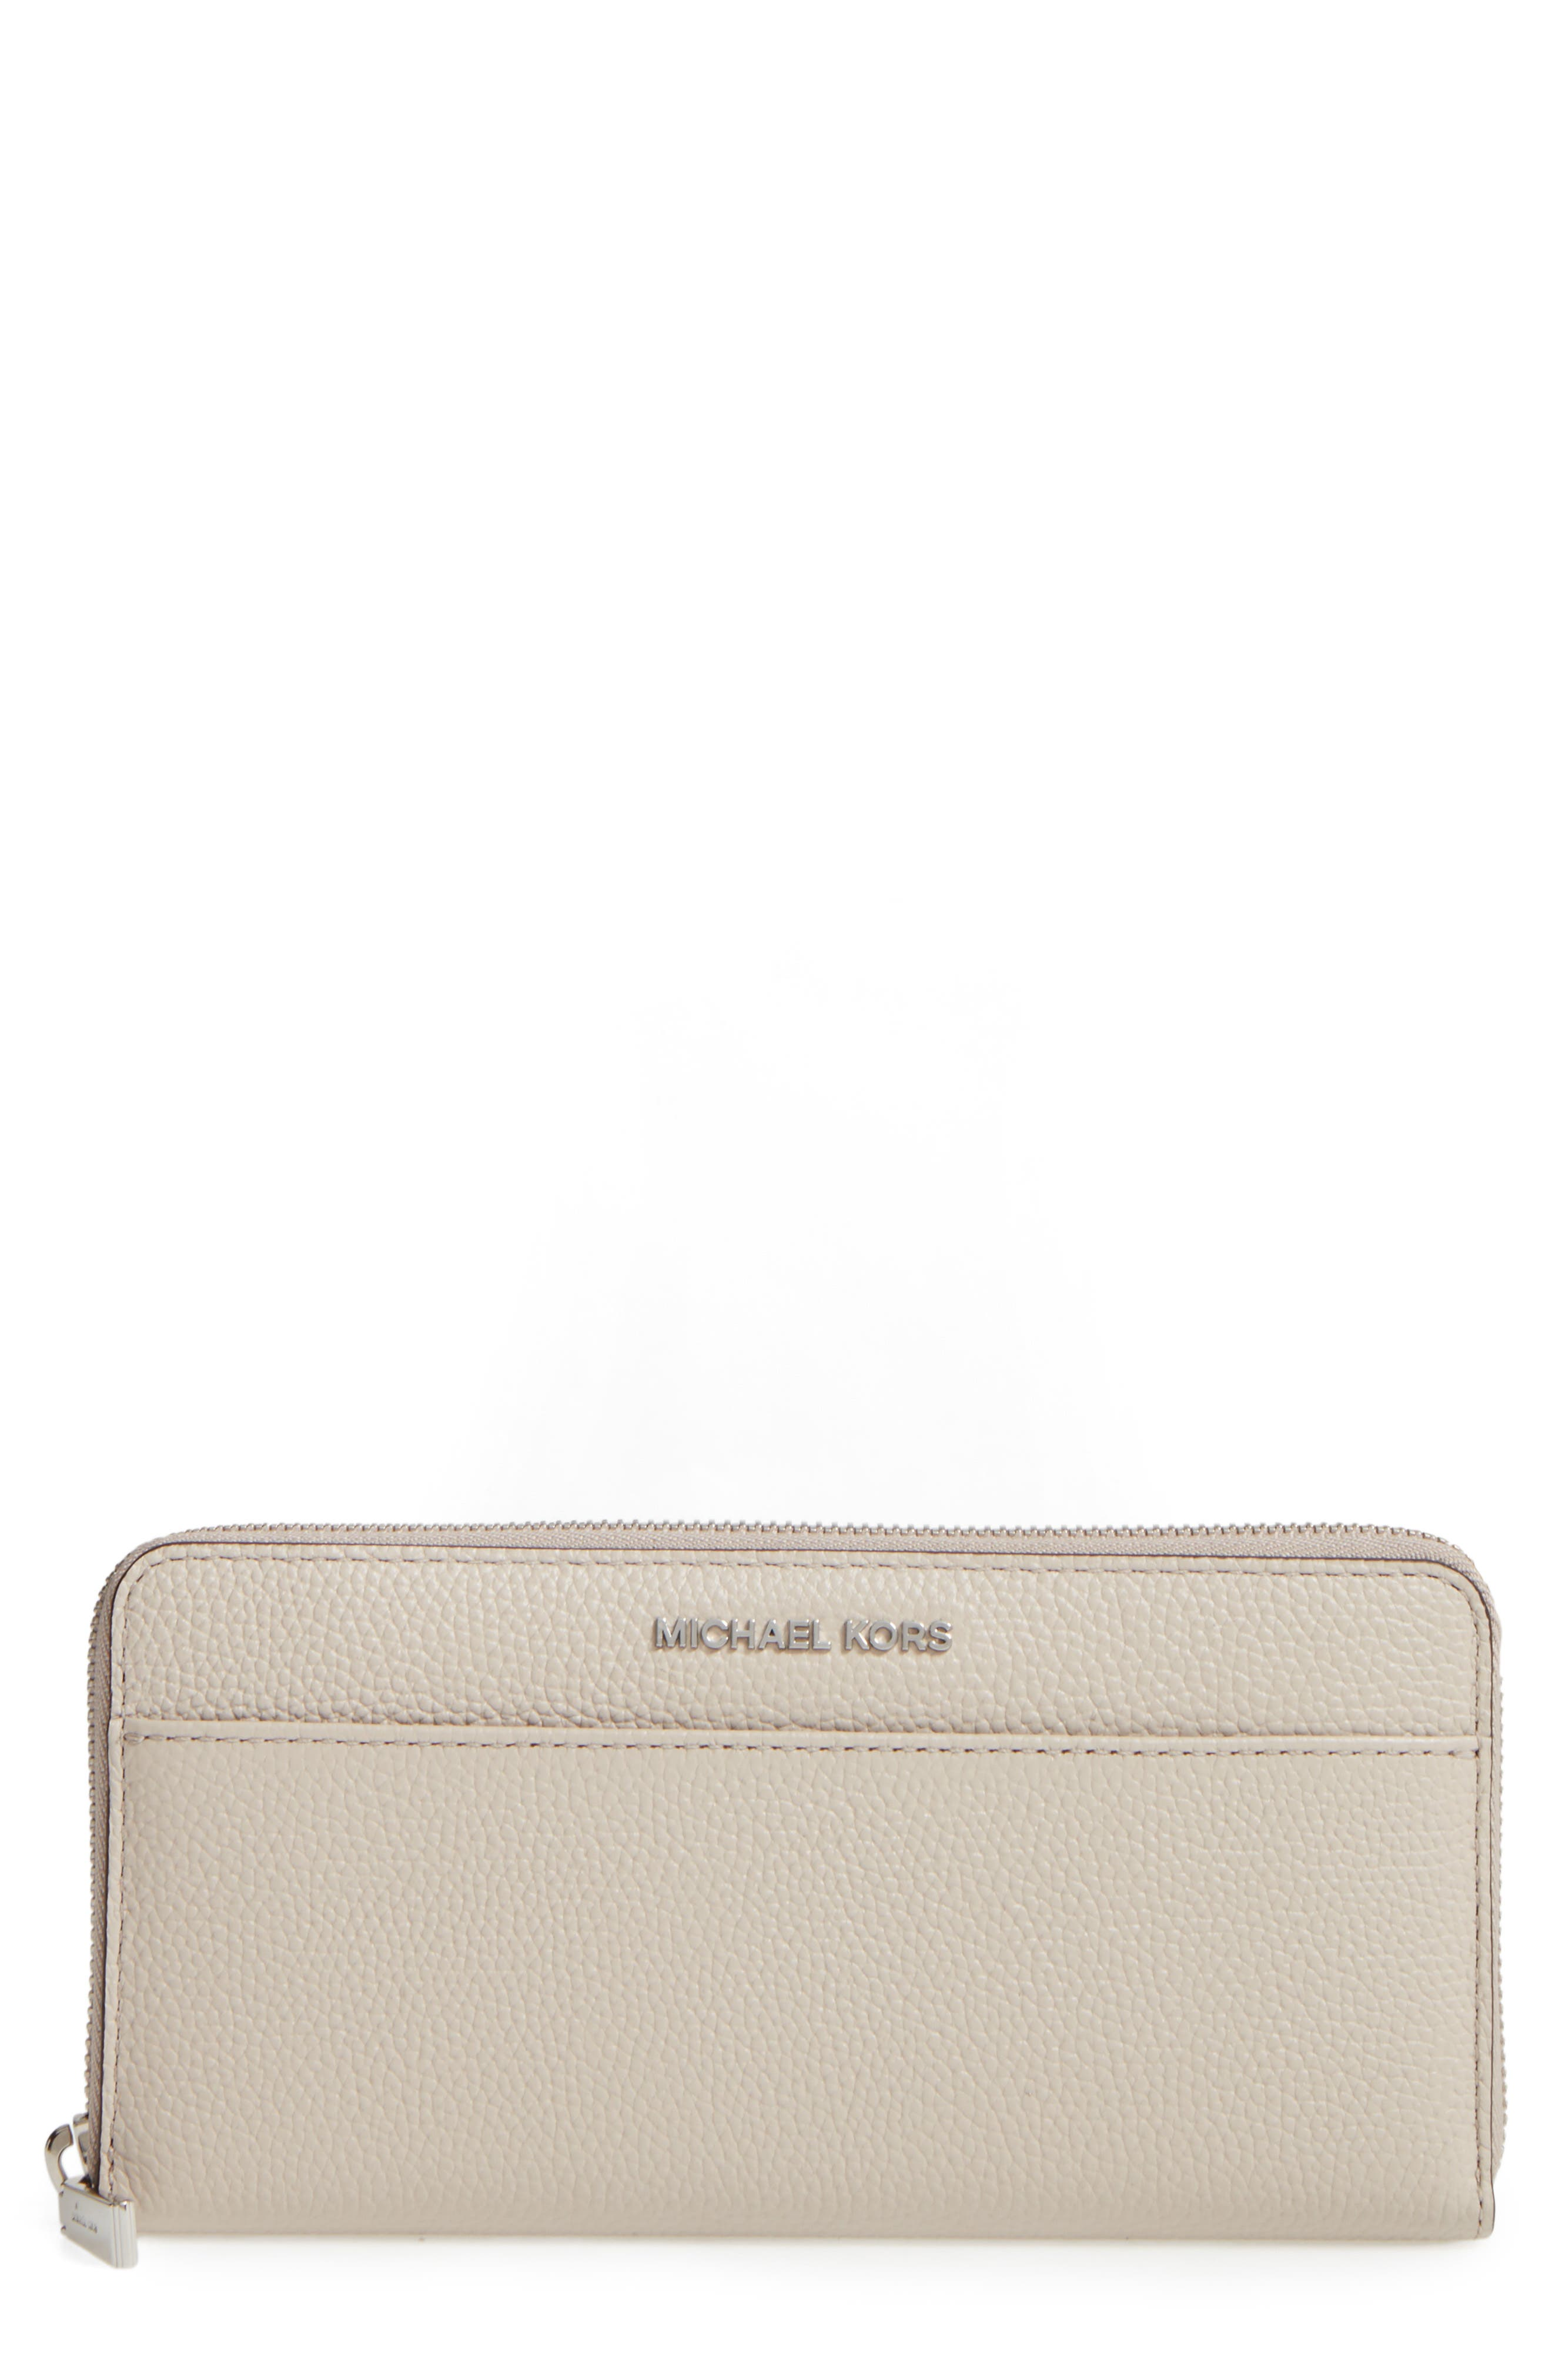 Mercer Leather Continental Wallet,                         Main,                         color,